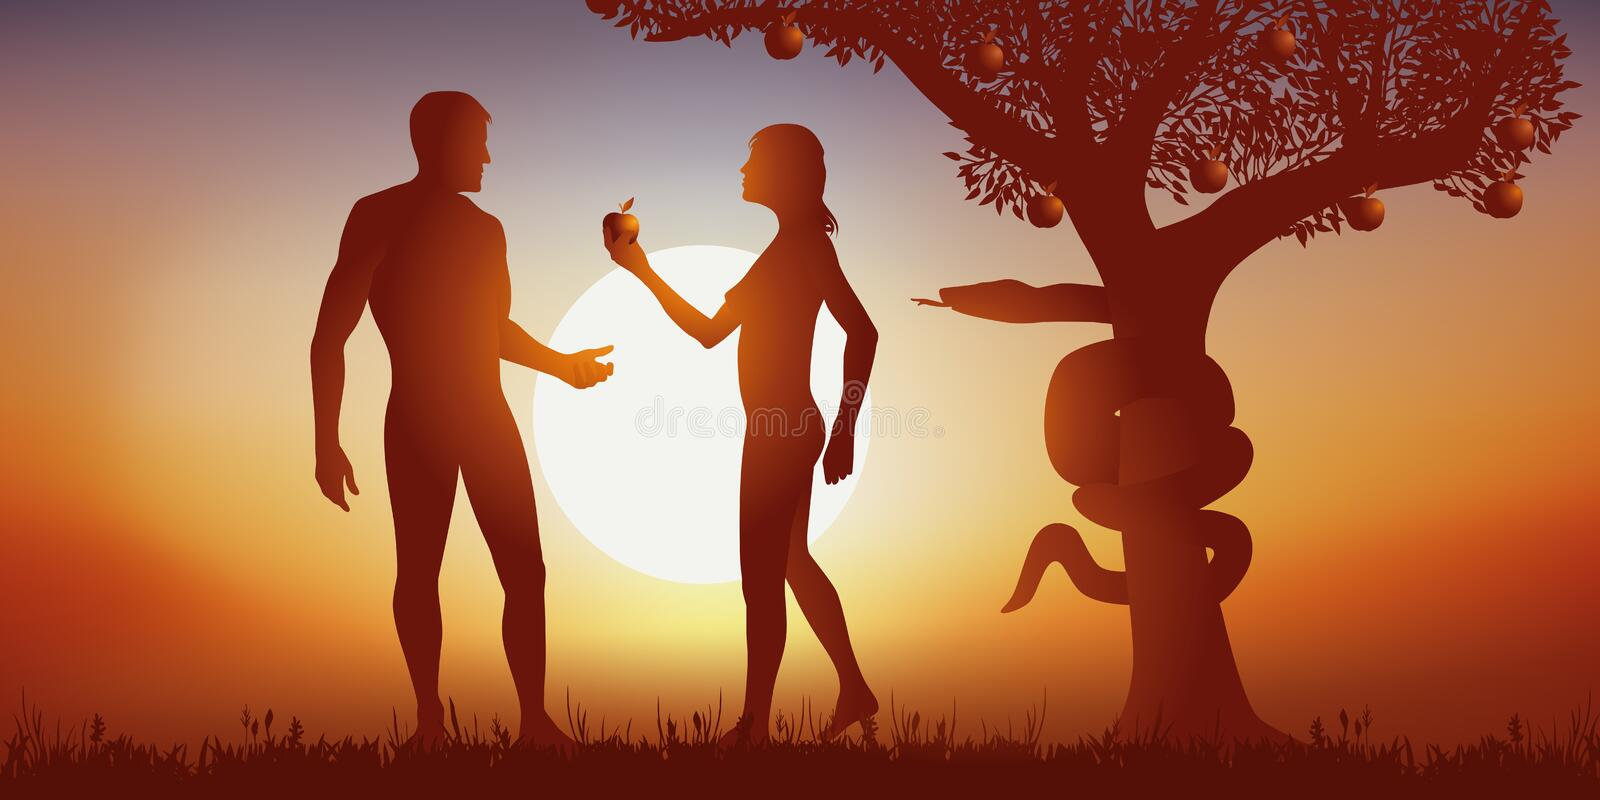 Myth of the creation of man by God with Adam and Eve at the time of crunching the apple. royalty free stock image